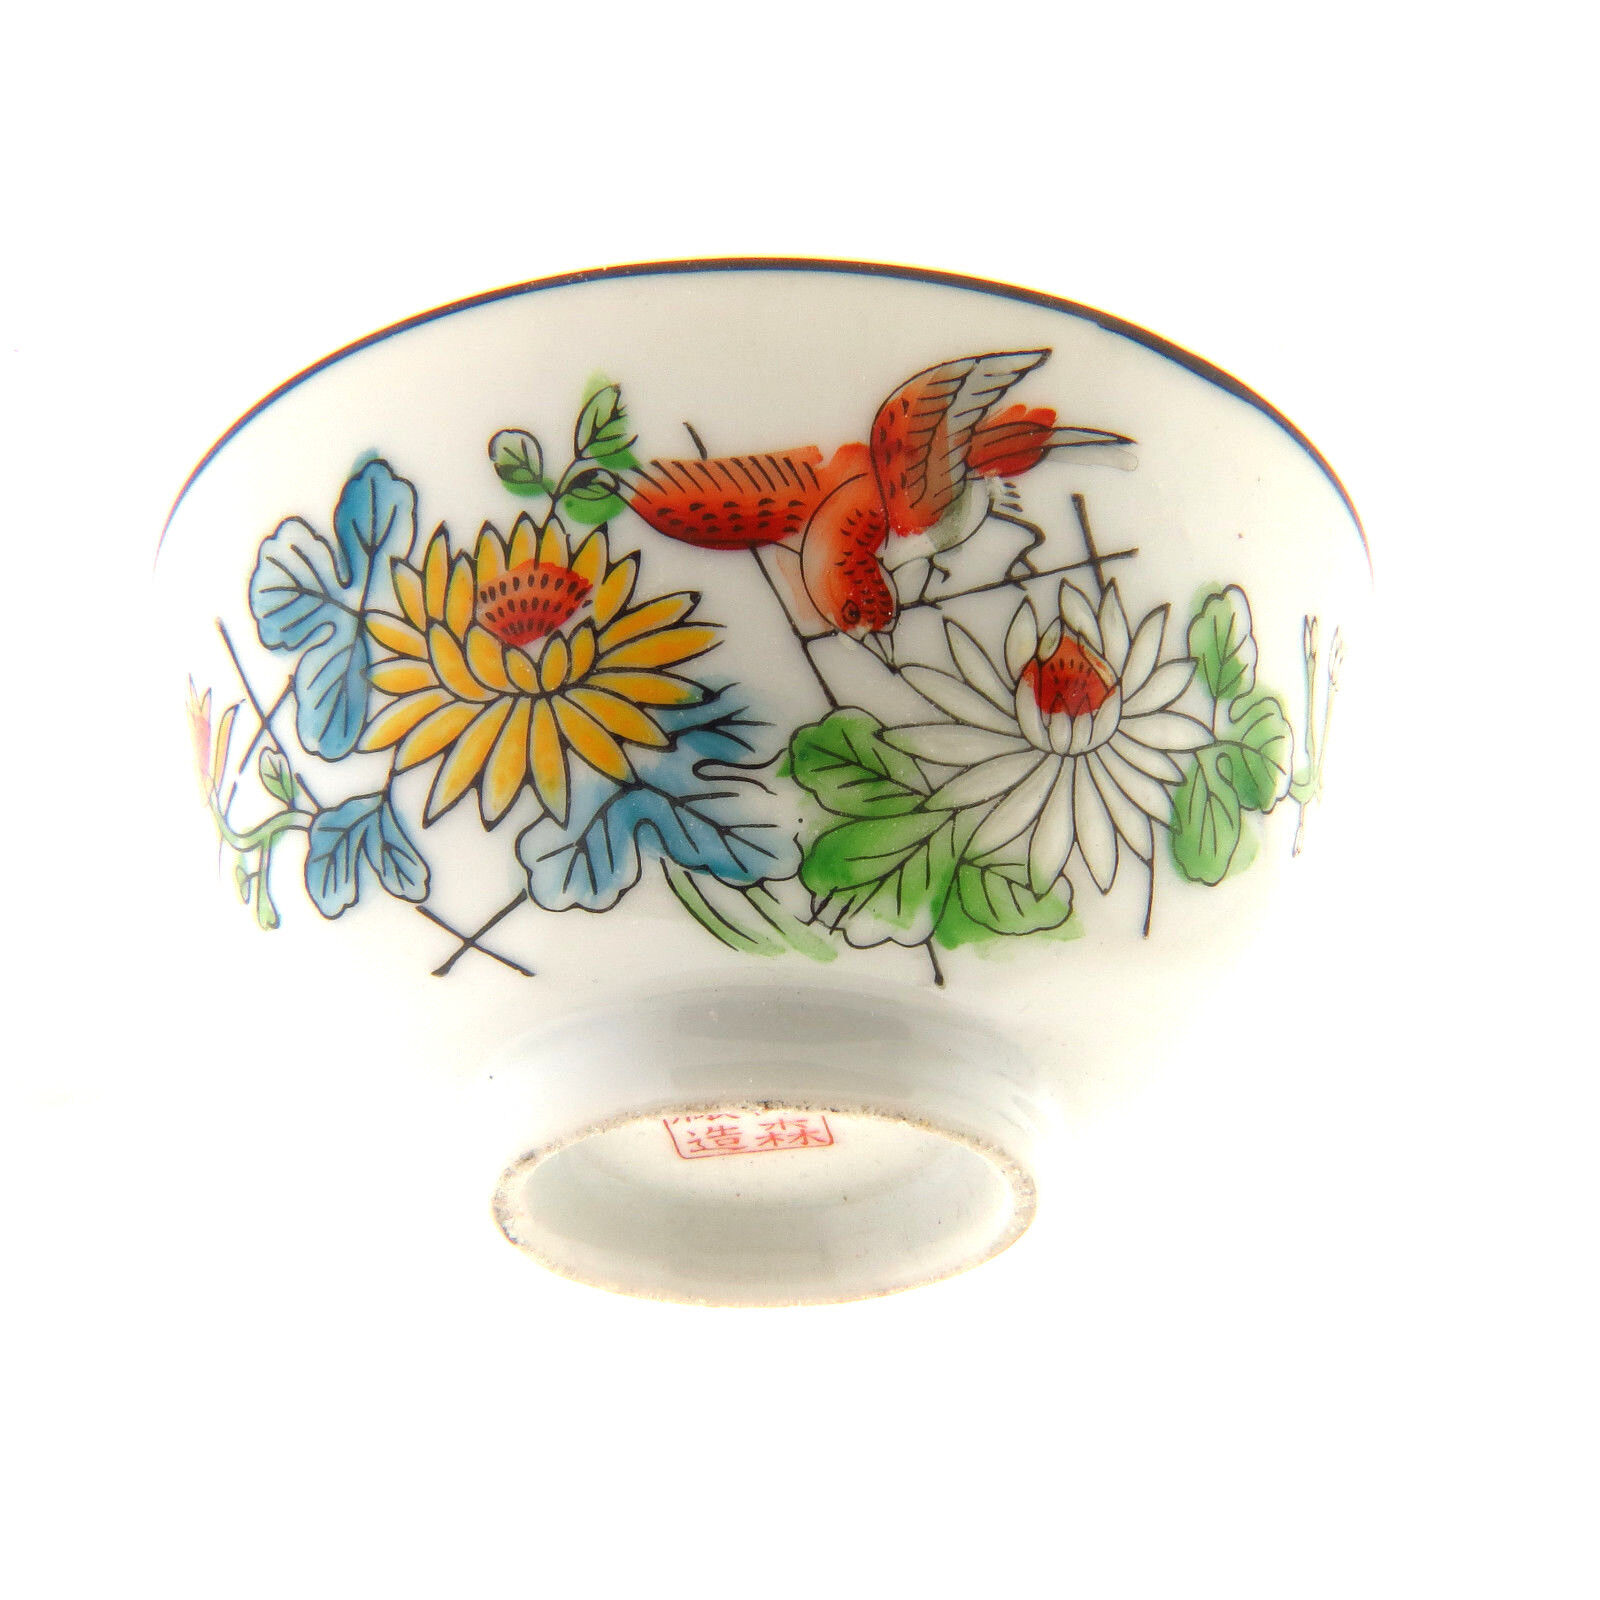 Vintage 60's Chinese Hand Painted Porcelain Rice Bowl Bird and Flower